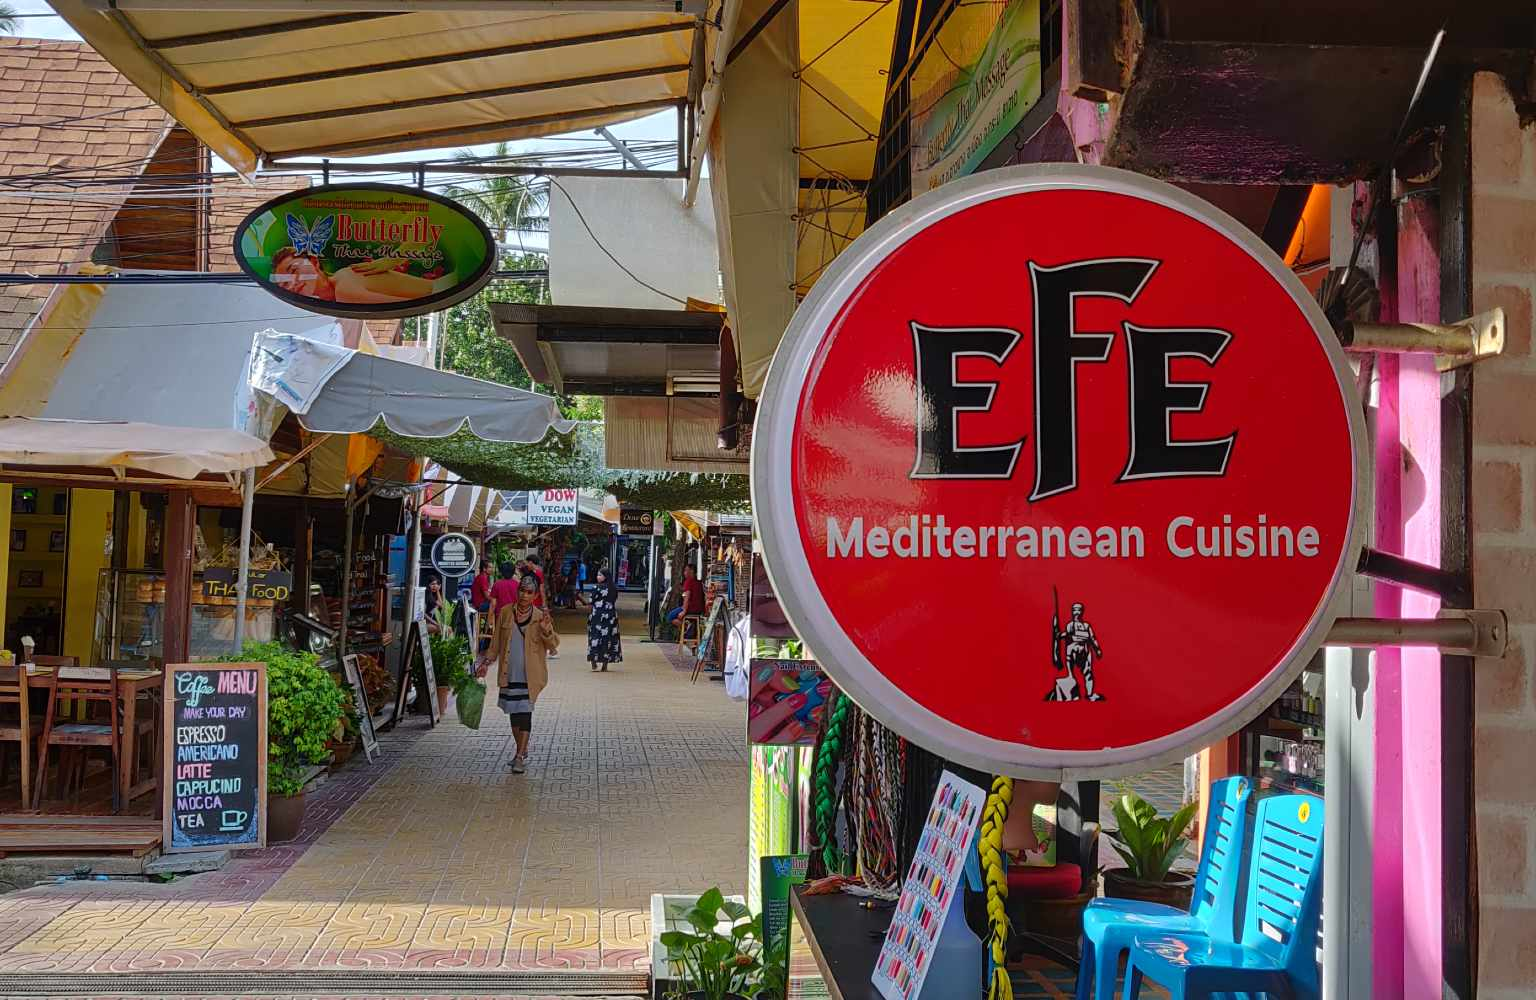 The street where Efe Mediterranean Cuisine is located on Koh Phi Phi